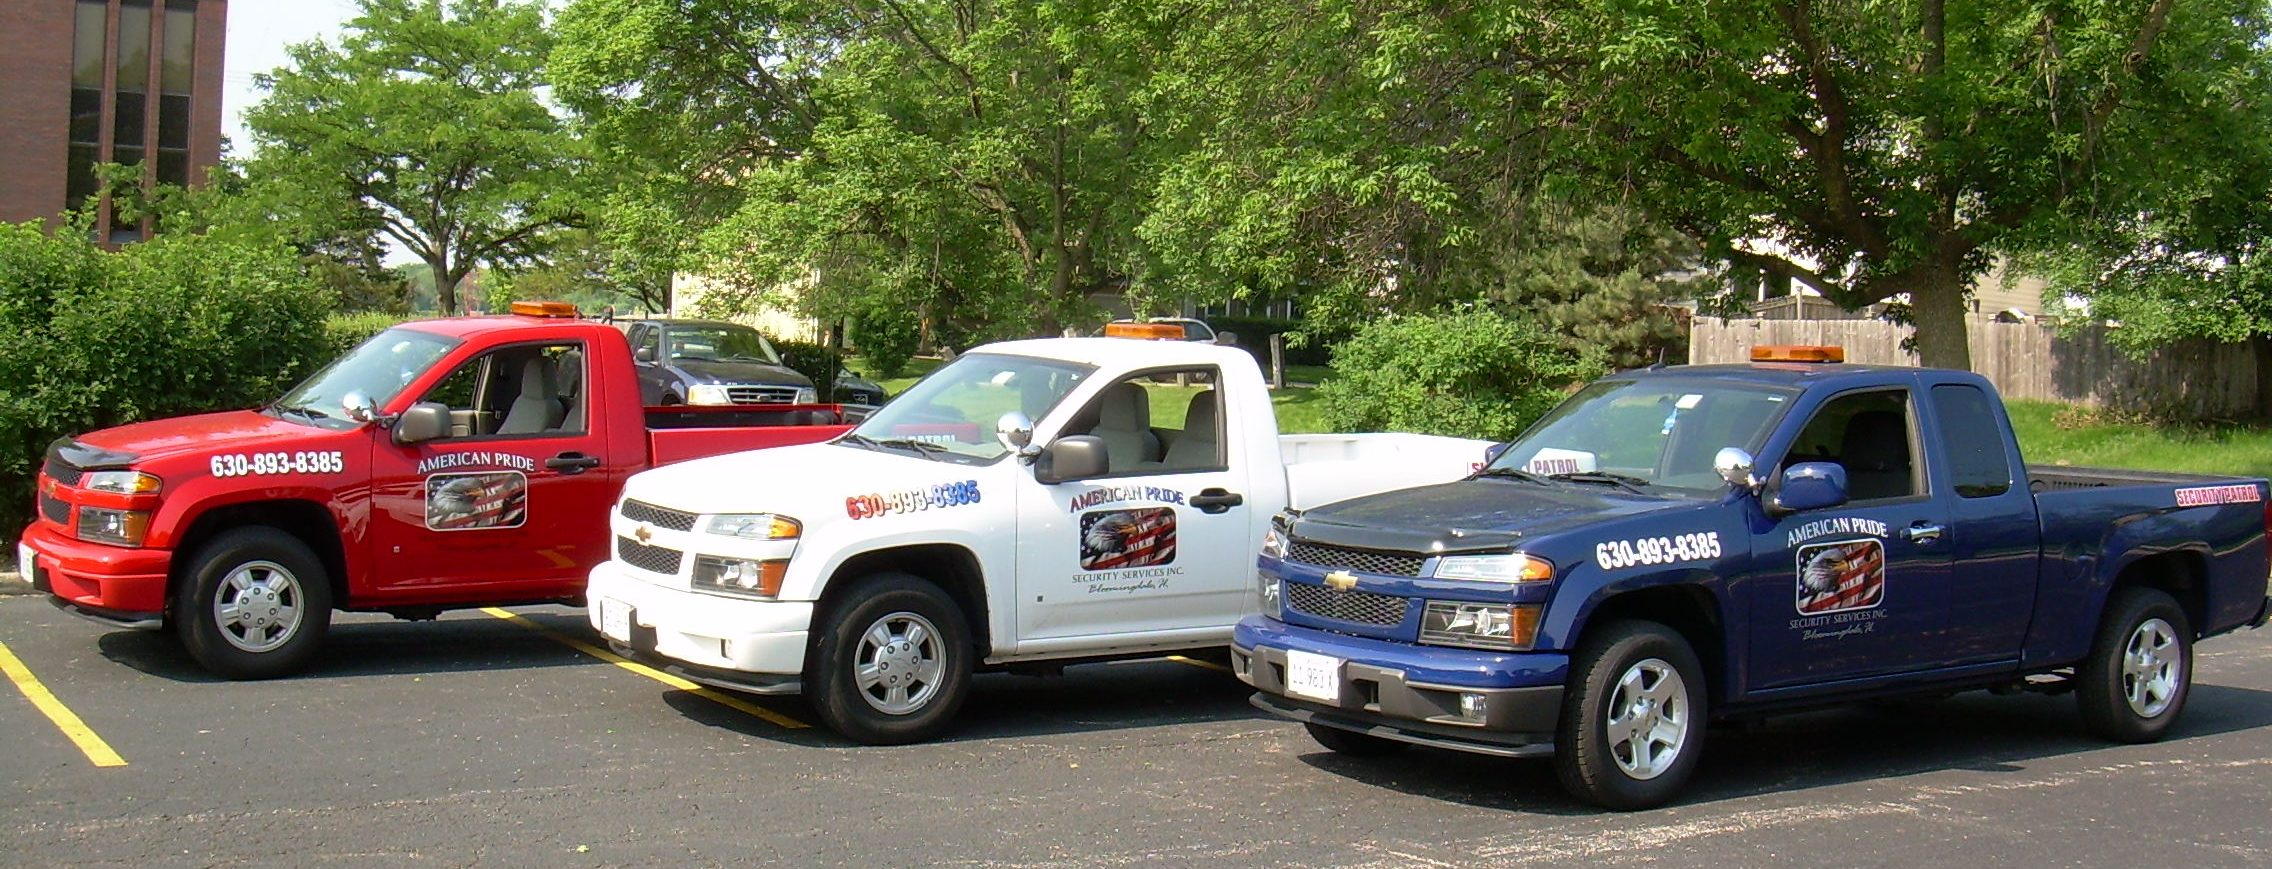 American Pride Security Services Inc. trucks